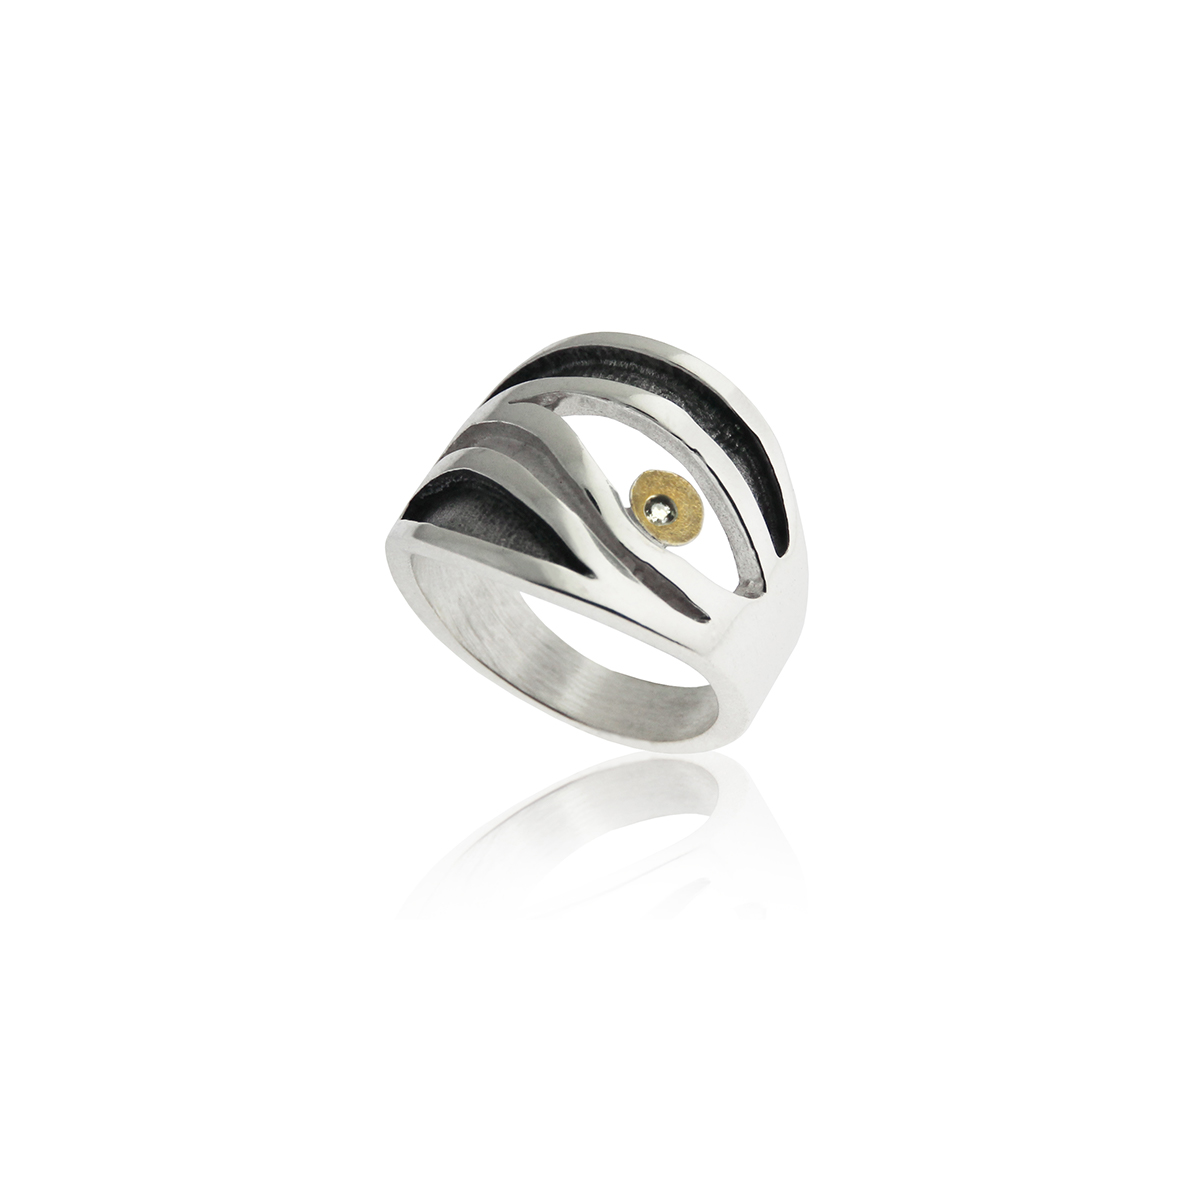 SILVER & GOLD RING w/ DIAMOND. R1802D